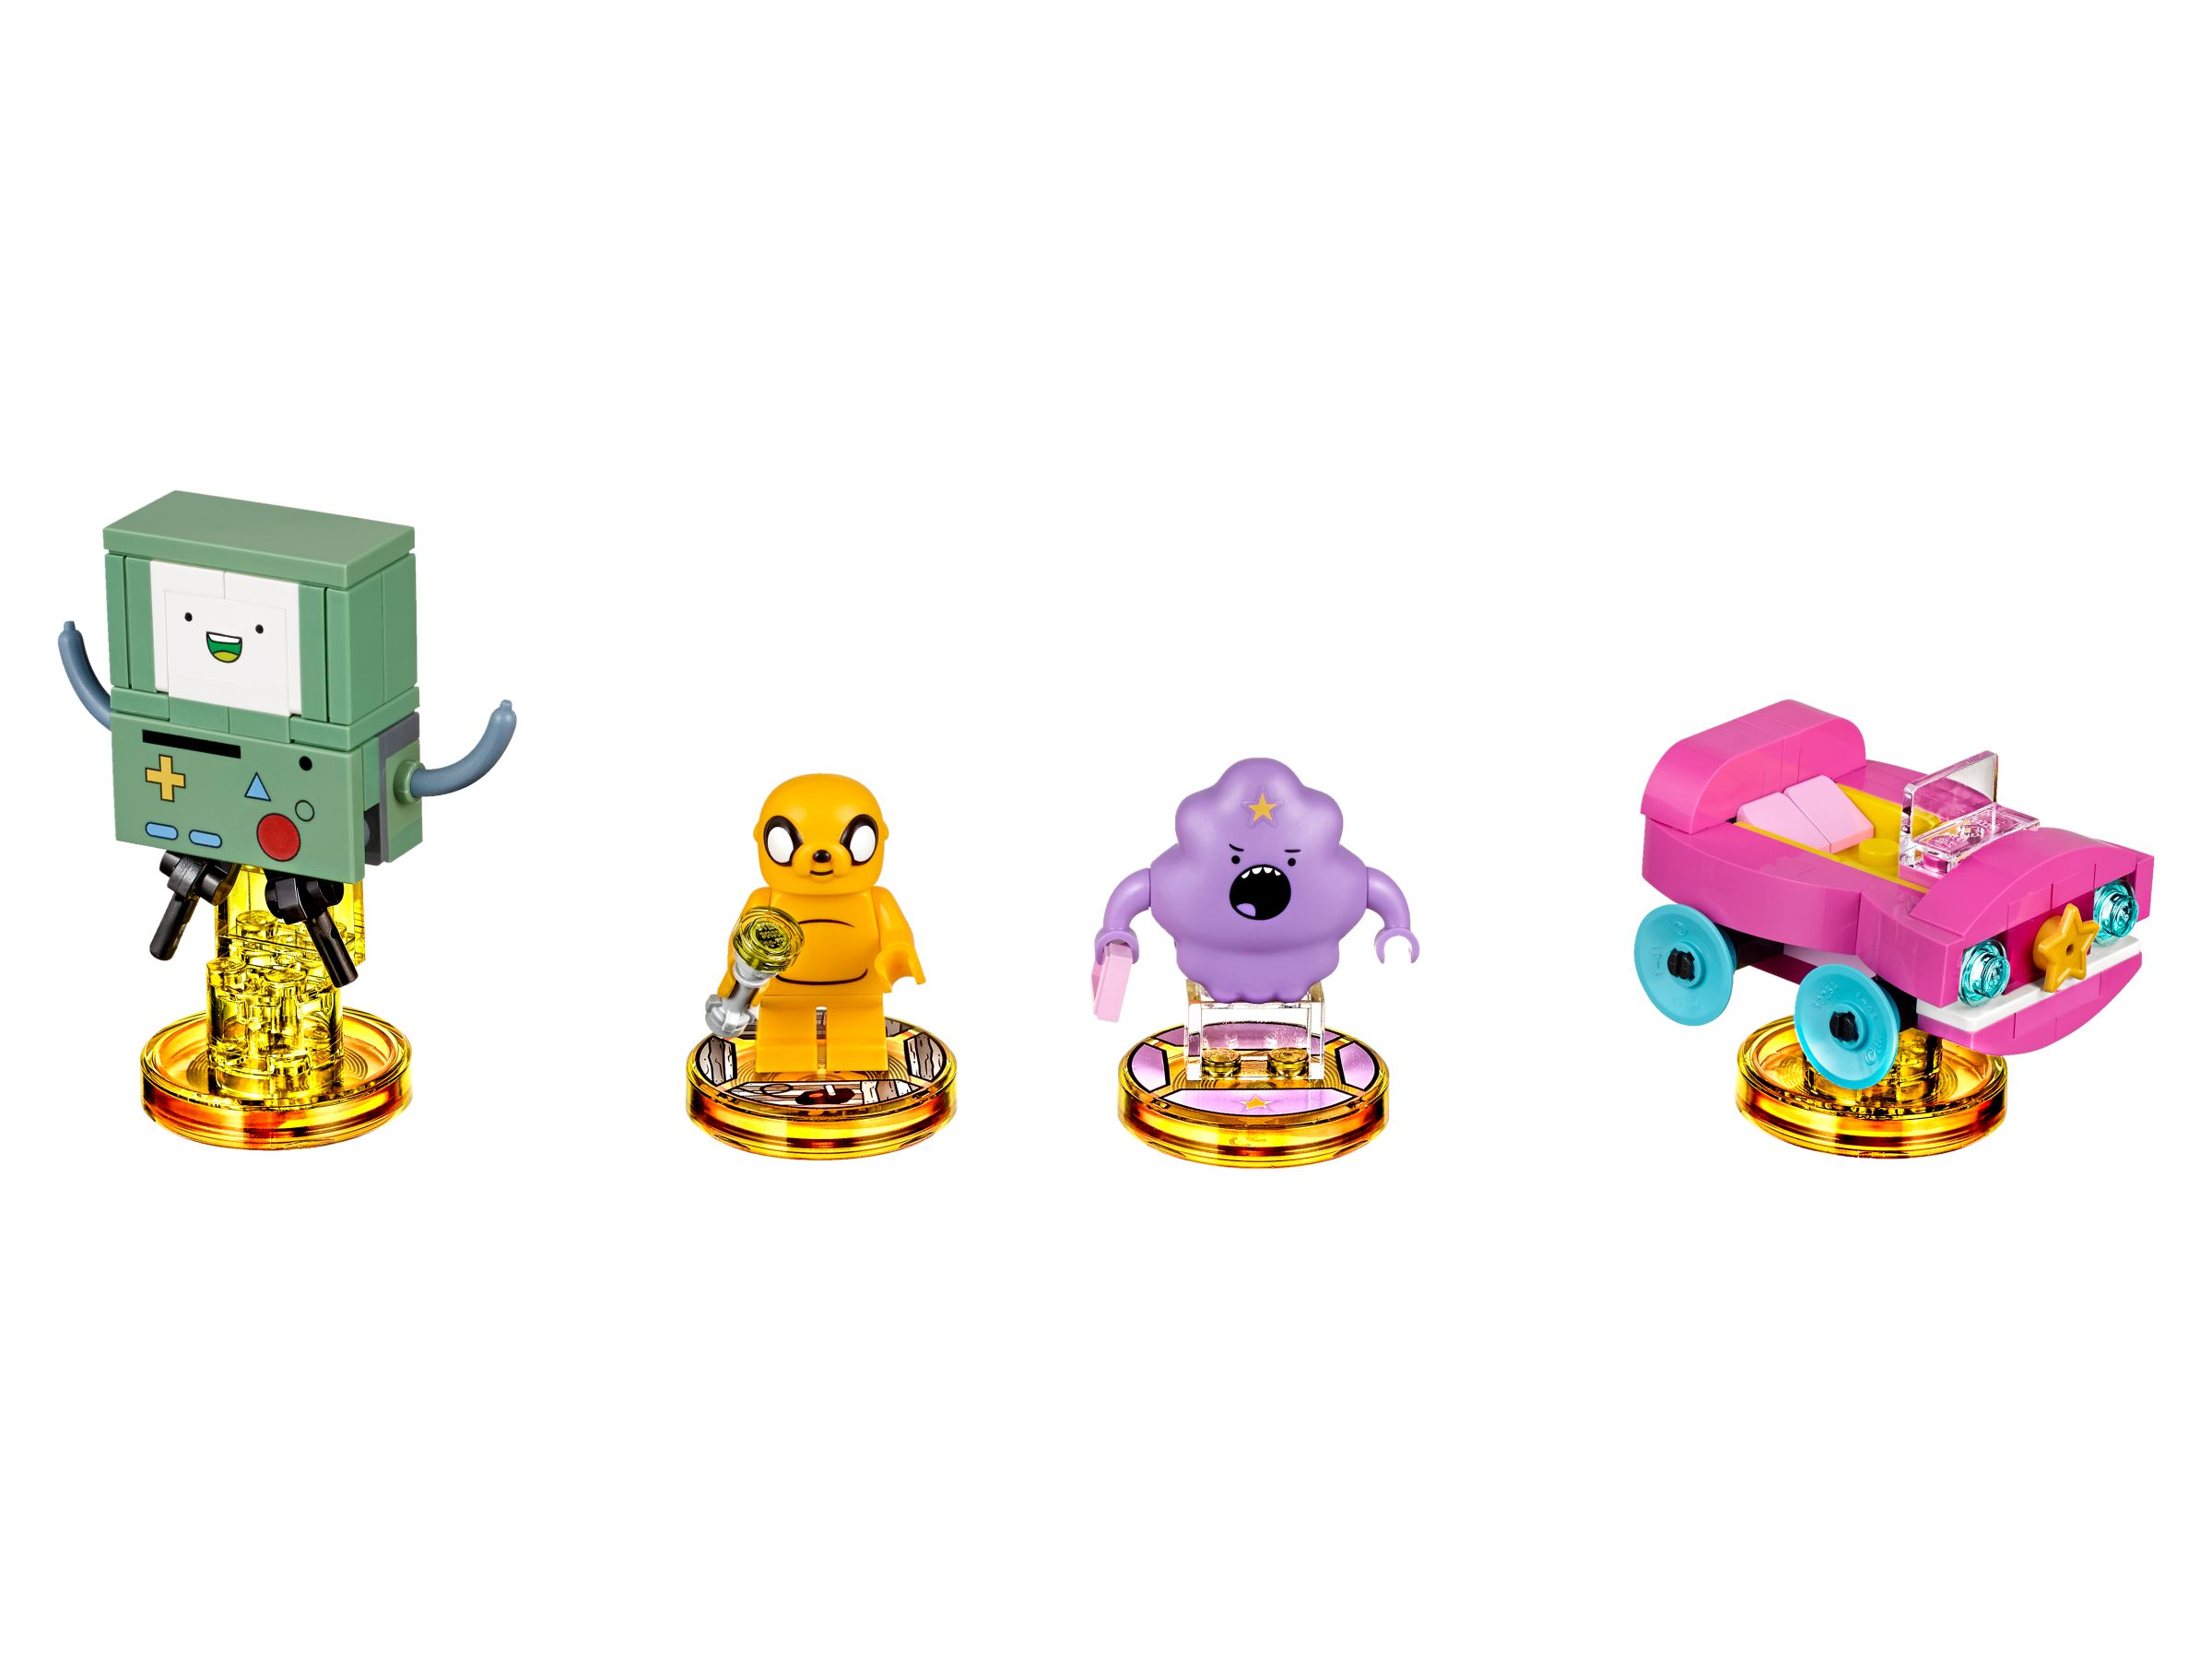 LEGO Dimensions 71246 Team Pack Adventure Time LEGO_71246.jpg